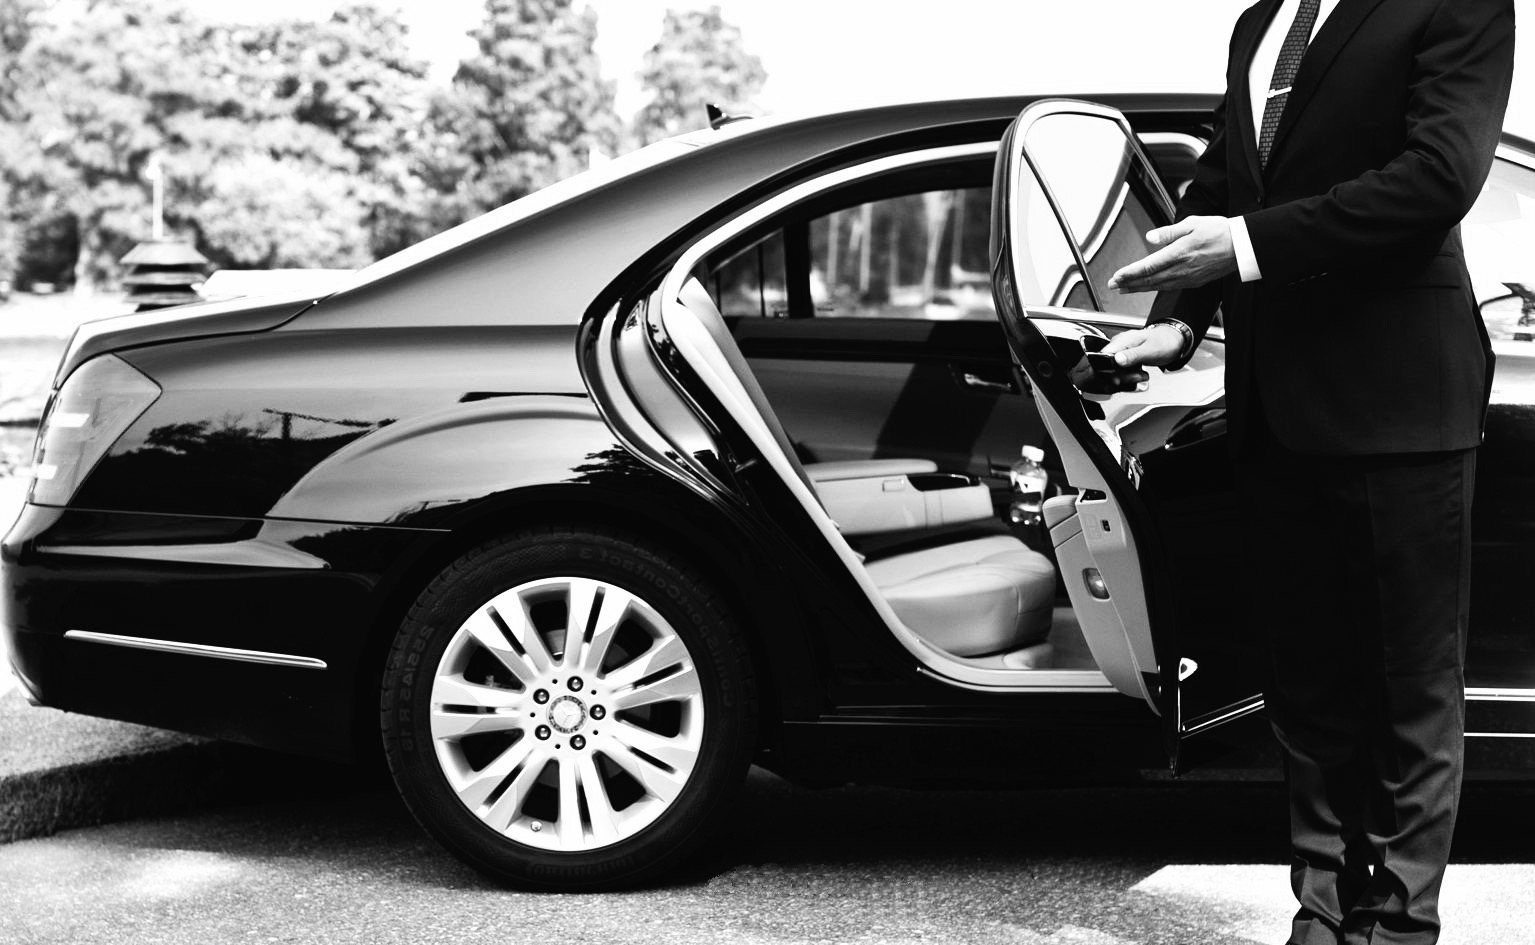 8 Reasons To Become a Private Hire Taxi Driver